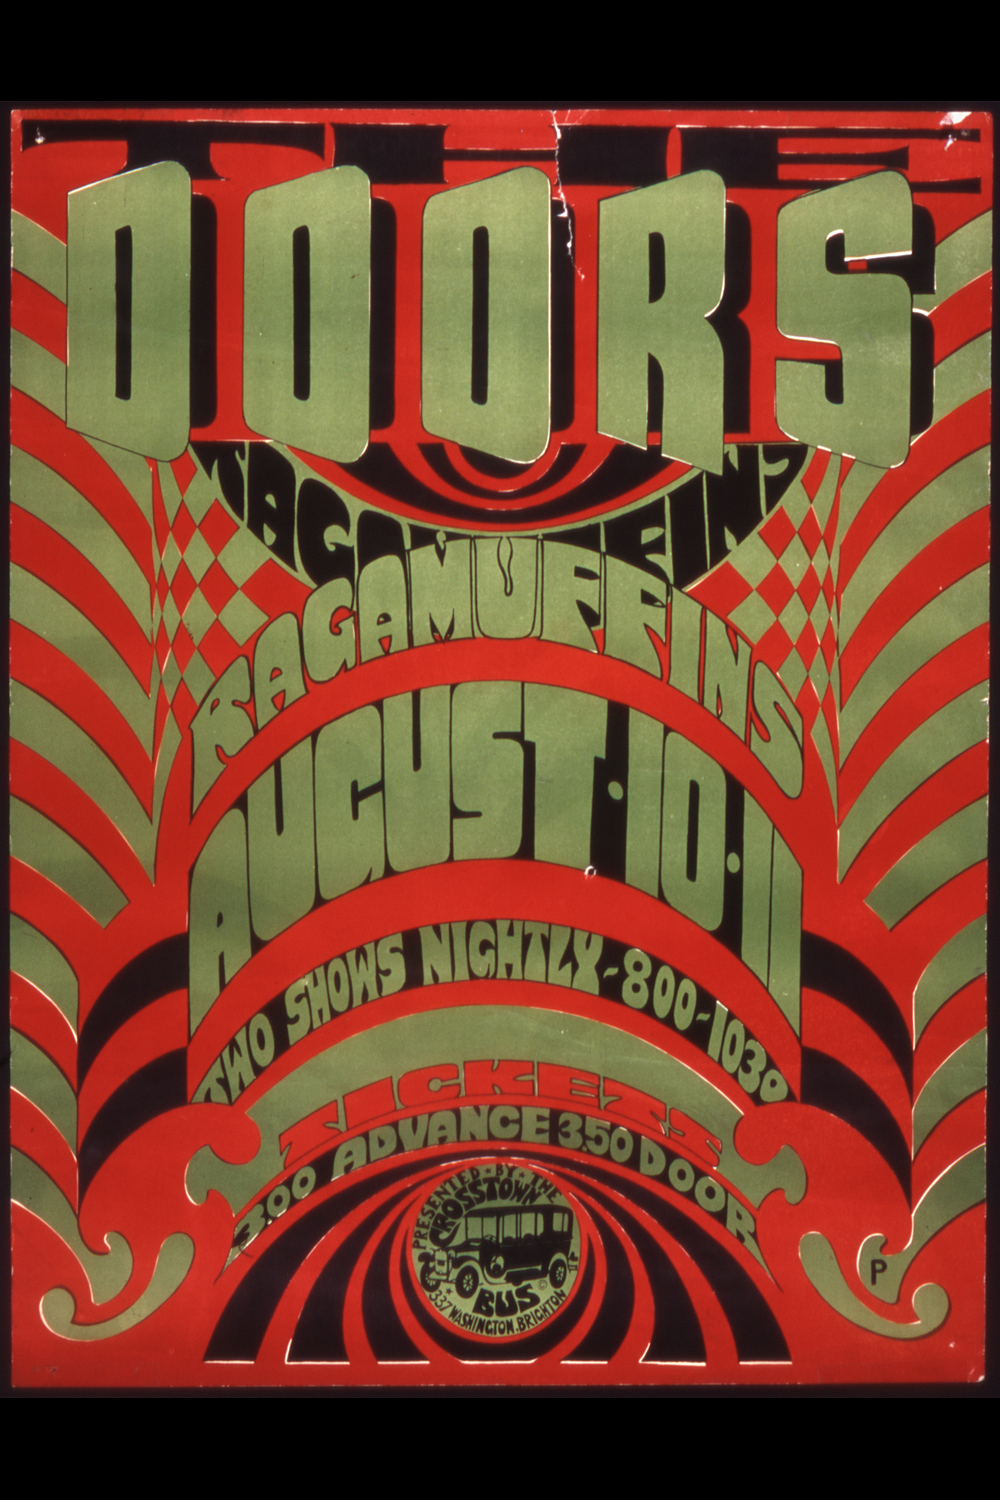 Concert Poster: The Doors and The Ragamuffins & DWB \u0026 Company: Doug Burns Calligrapher - Special Items Pezcame.Com